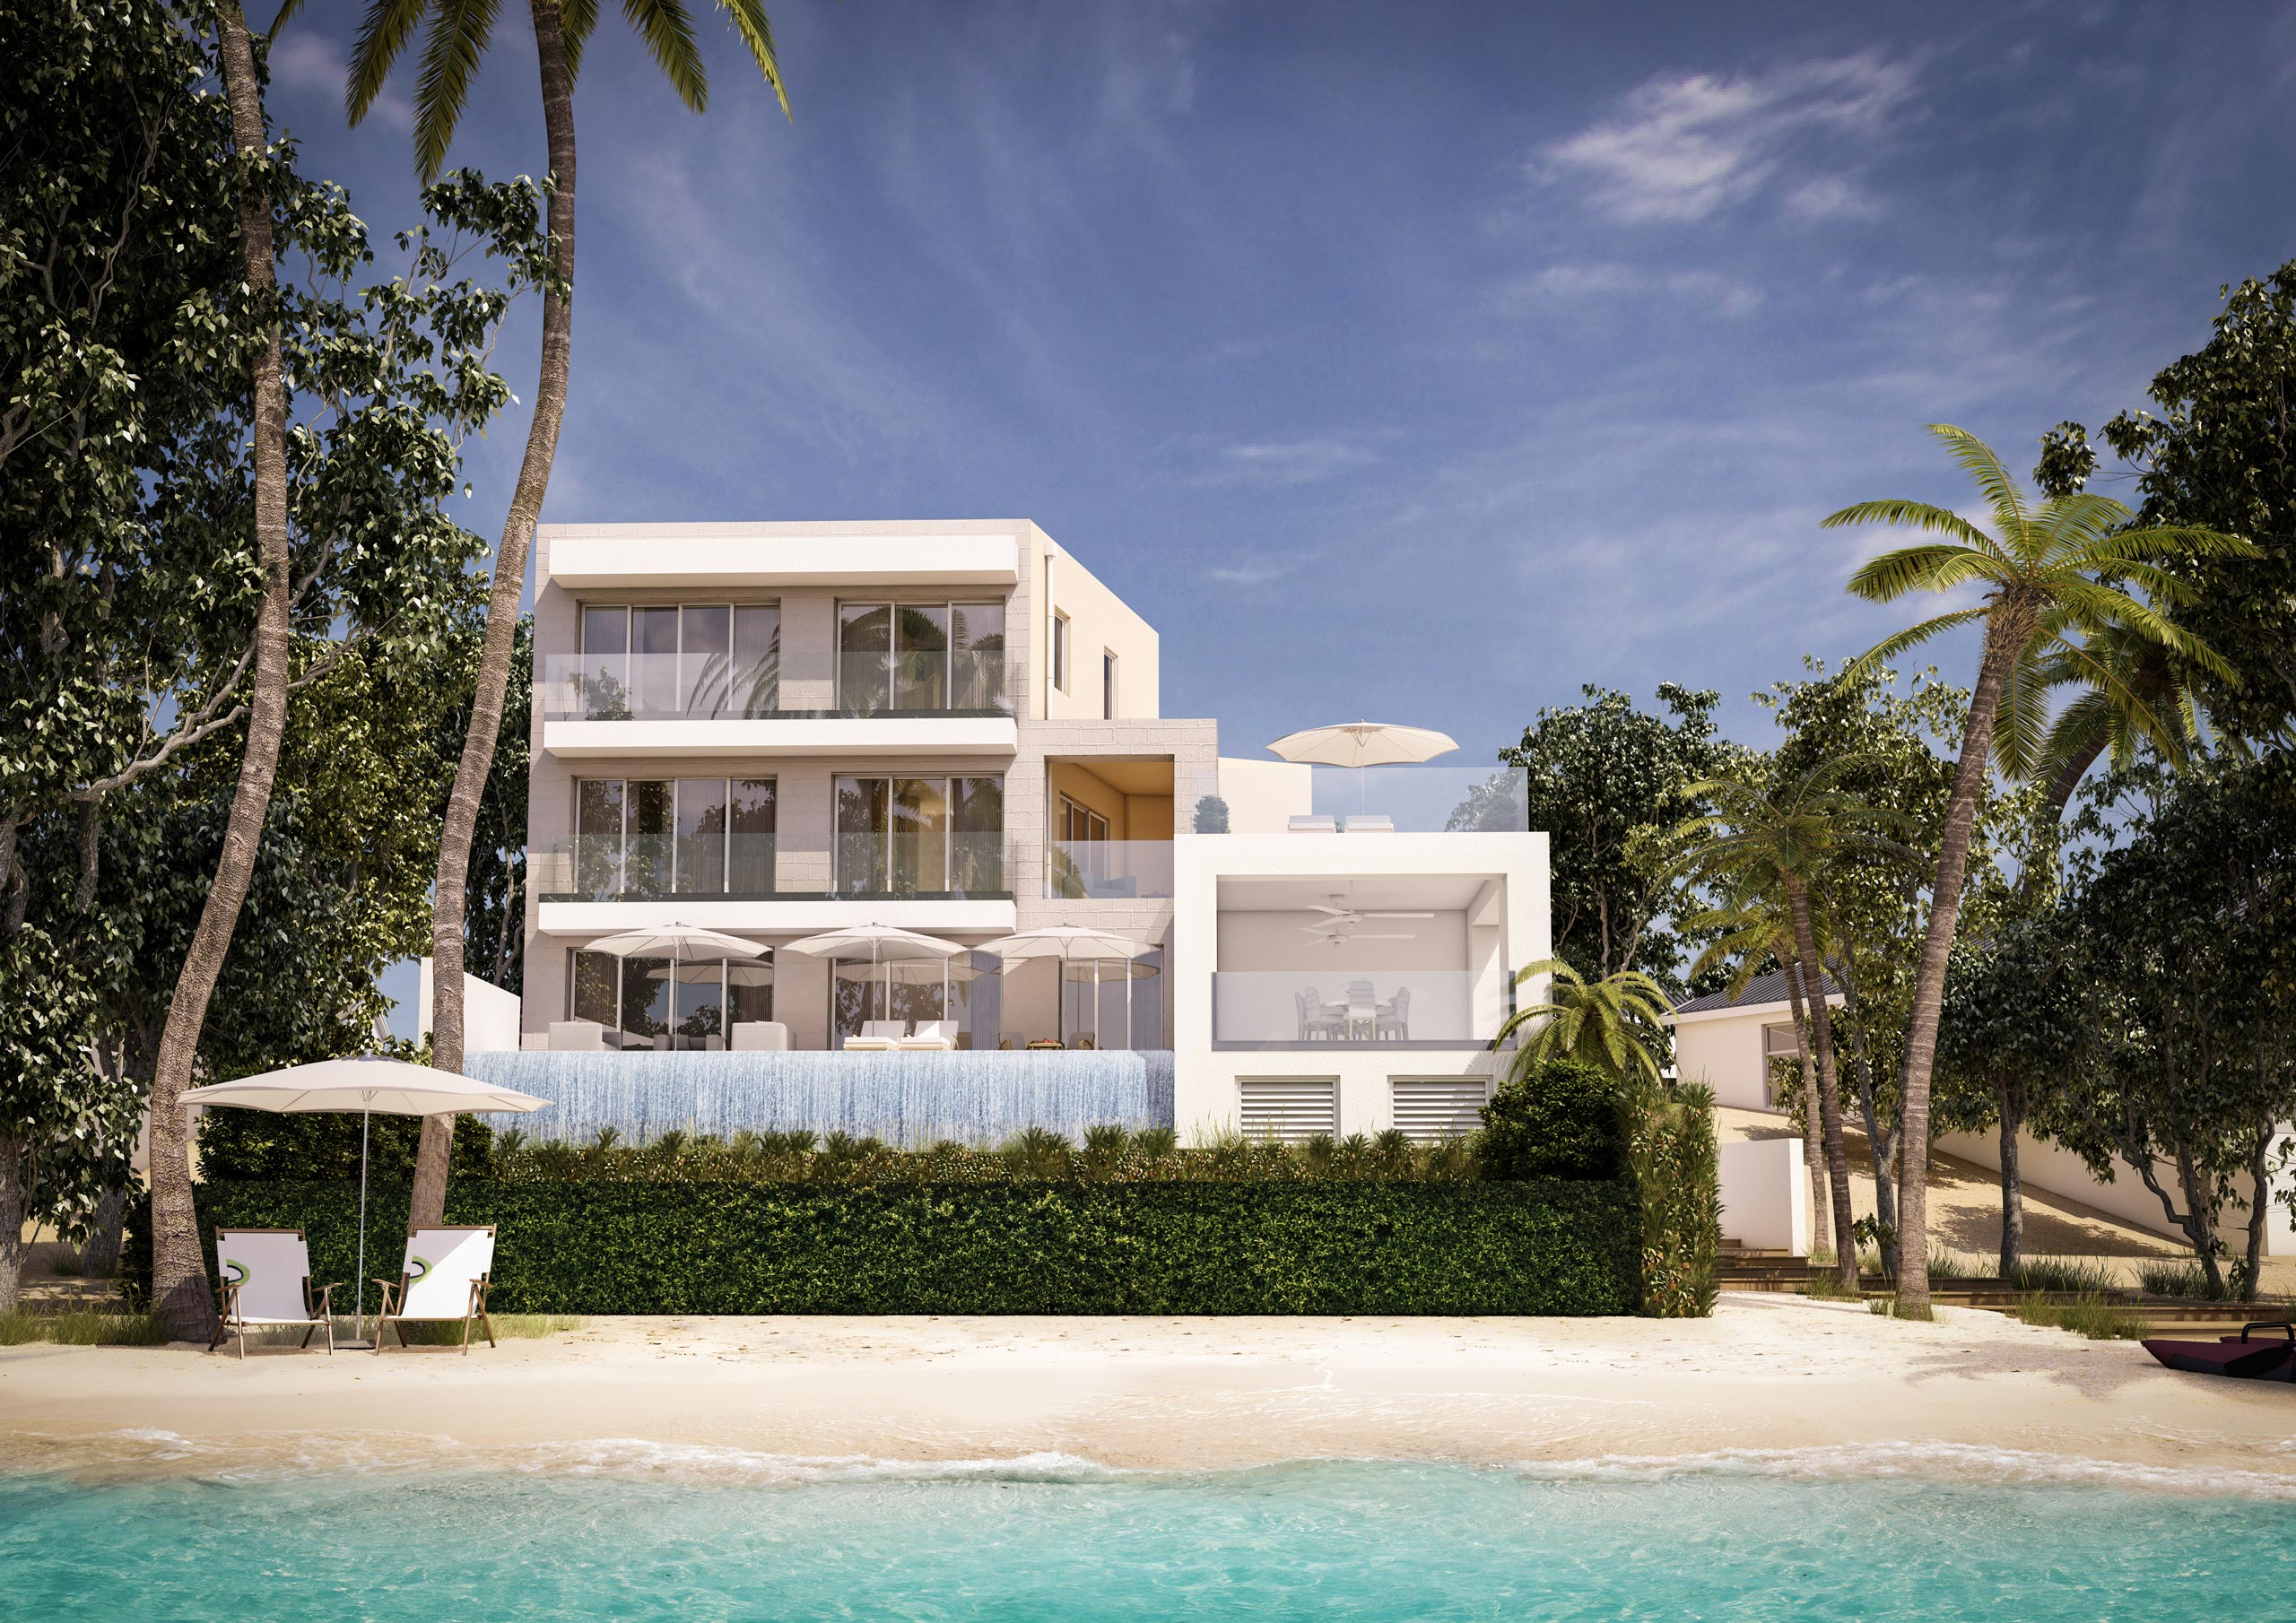 Architectural-visualisation-Dorset-London-Barbados-01